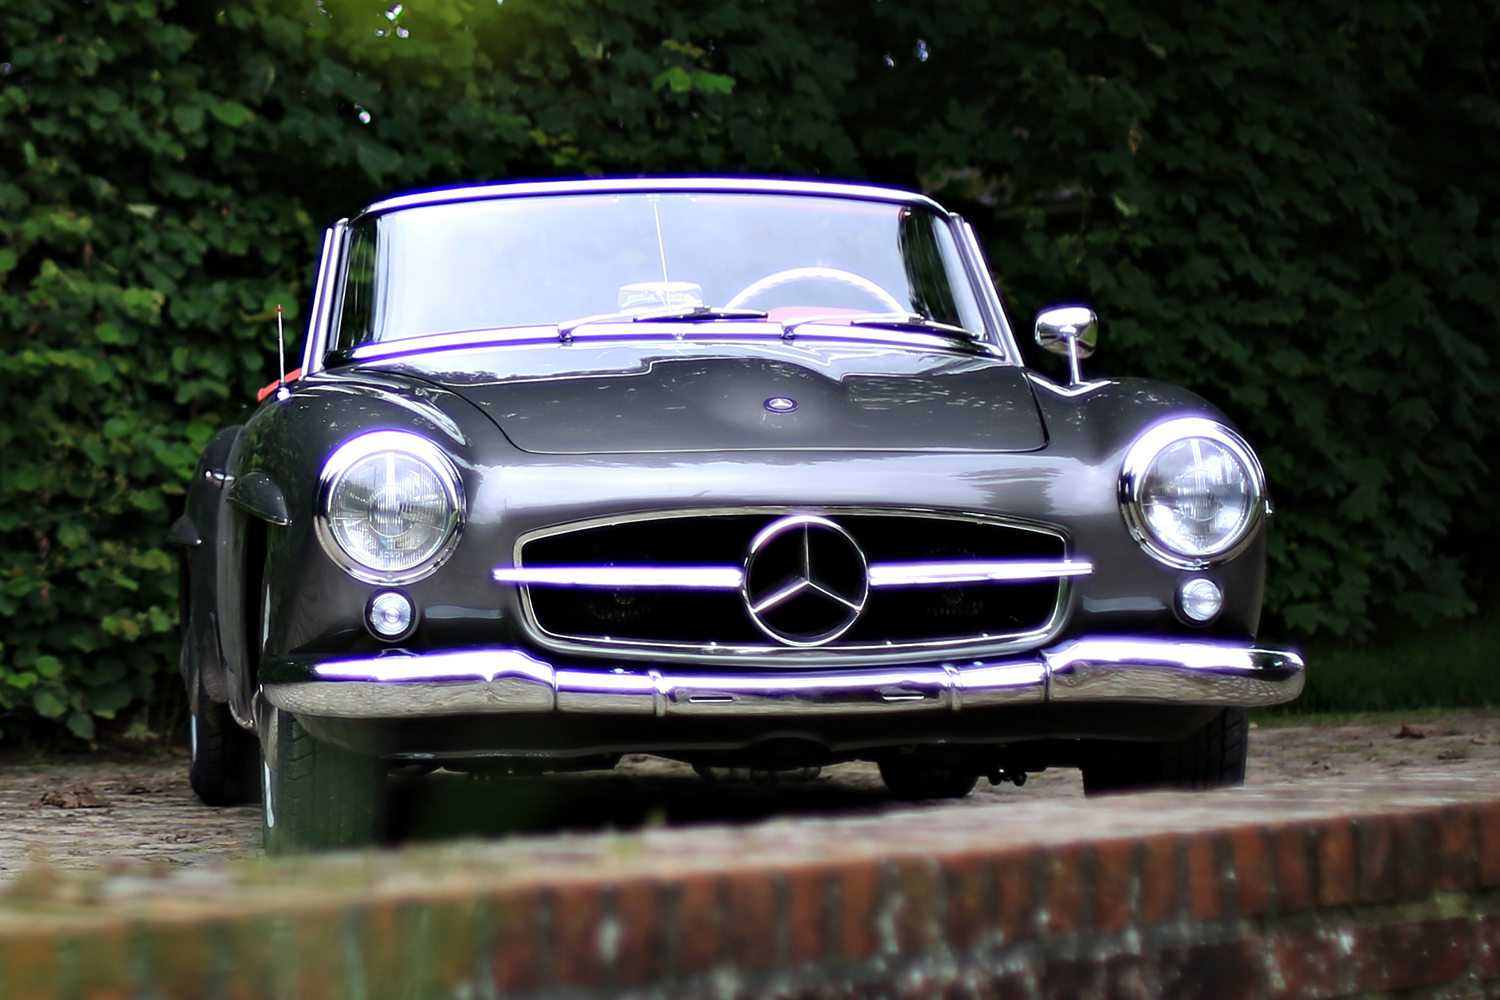 efe3d7cdc5 Buy   Sell Classic and Vintage Cars